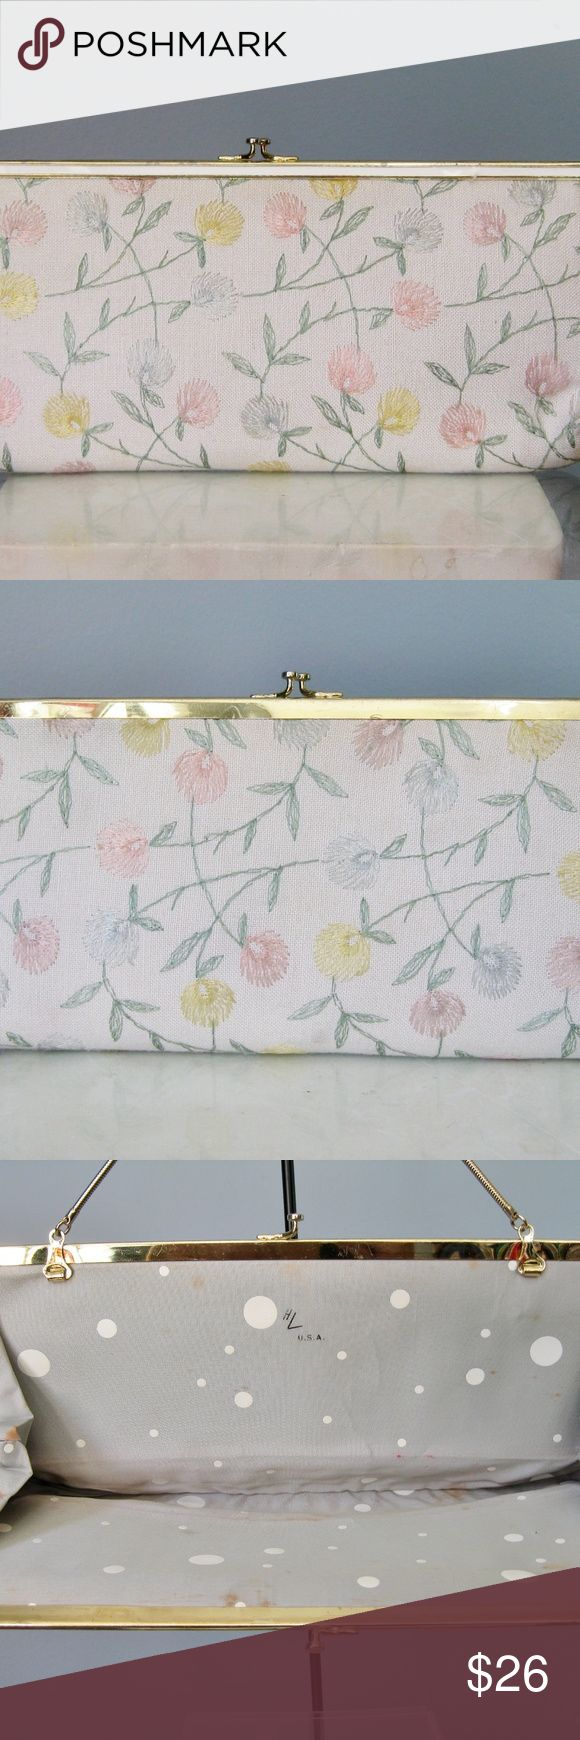 "Vintage 1960s Embroidered Clutch Extra pretty long and lean clutch from ""HL USA,""  a.k.a. Harry Levine Corporation. Gold chain that can be tucked away inside the bag or slung over your arm for hands free mingling. White fabric exterior covered w delicately embroidered clover flowers in pastel colors, pink, blue and yellow. Interior has a gray fabric lining with big white polka dots. Gold-tone kiss-lock frame Attached change purse I love the long slim chic shape of this bag. 12.5"" x 8"" x 1.5""…"